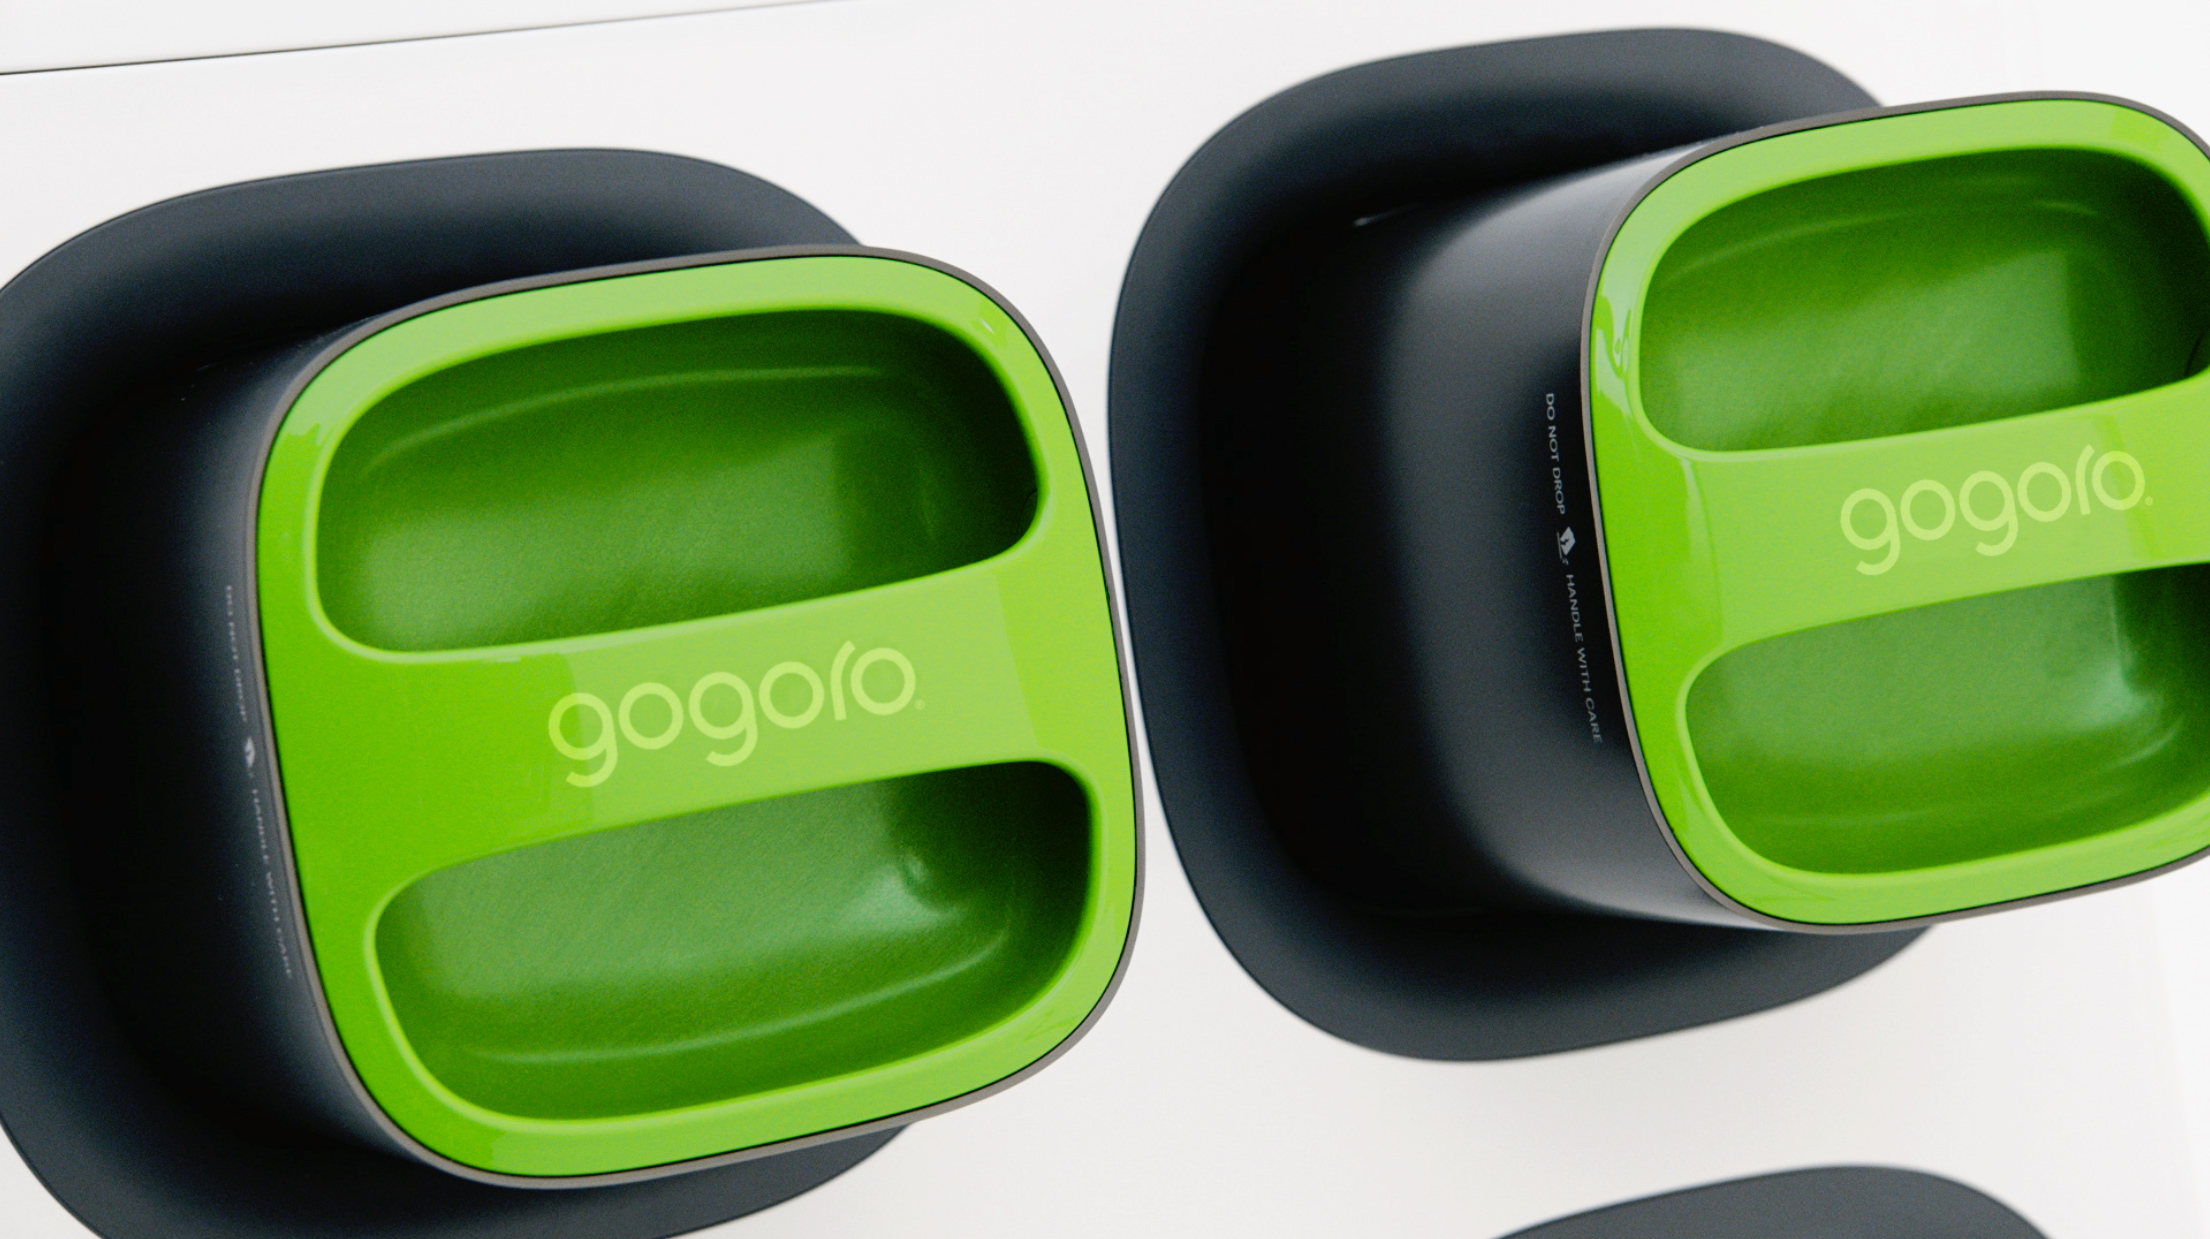 Smart scooter company Gogoro launches GoShare, an end-to-end